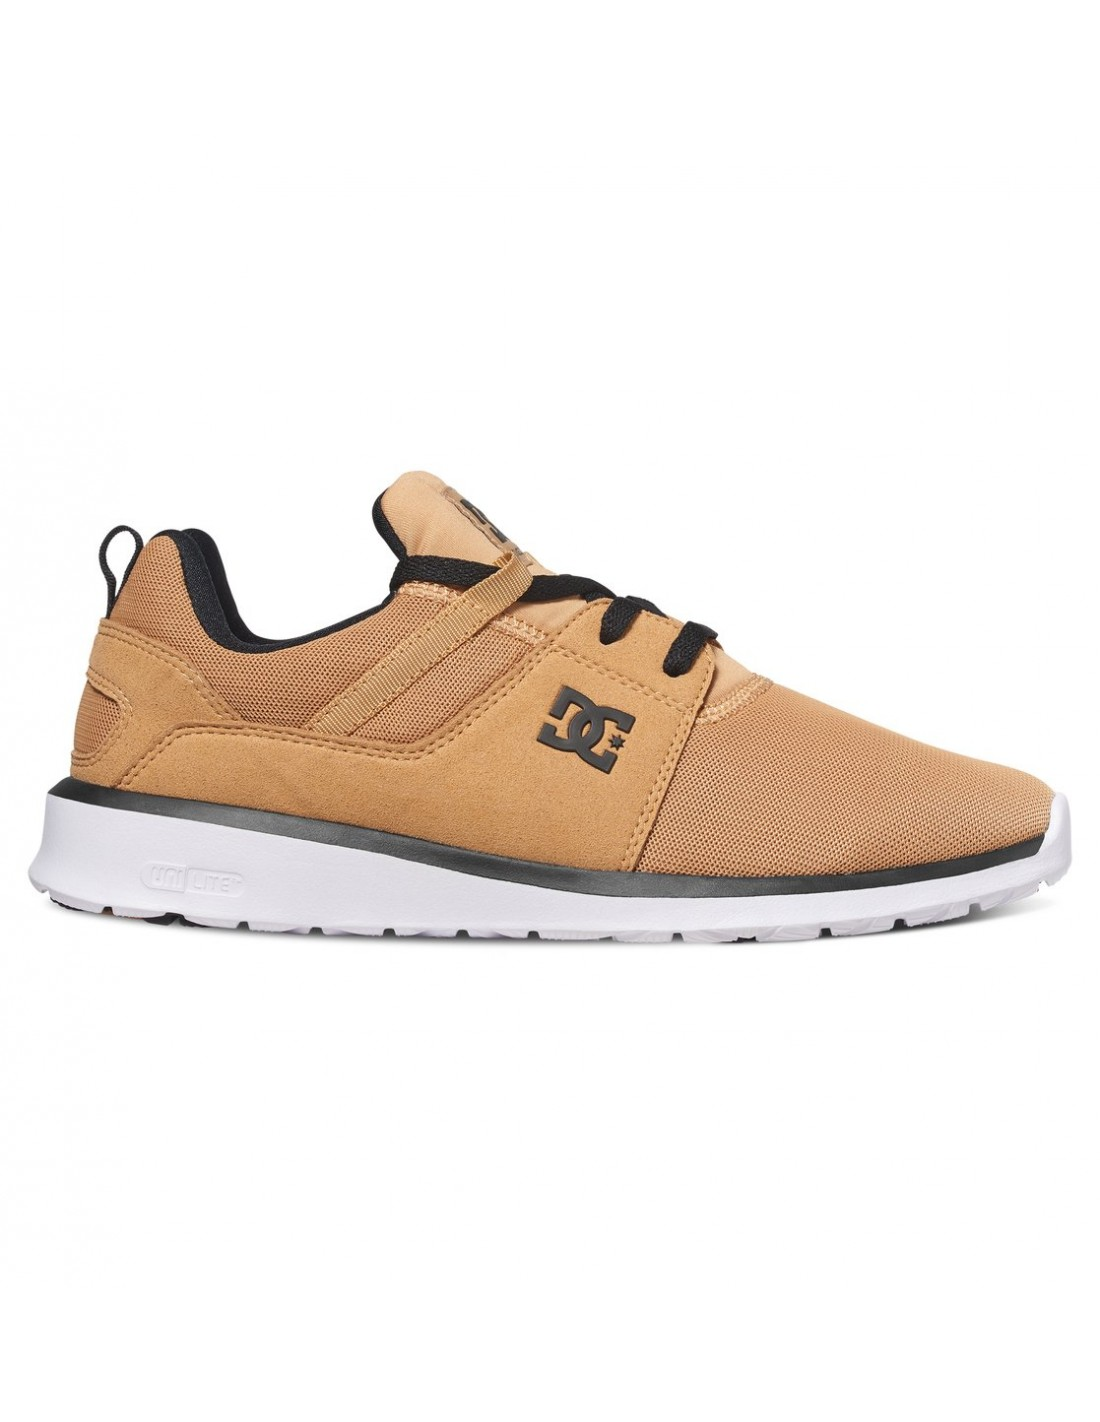 Heathrow TX SE - Baskets - Marron - DC Shoes nvy60LR